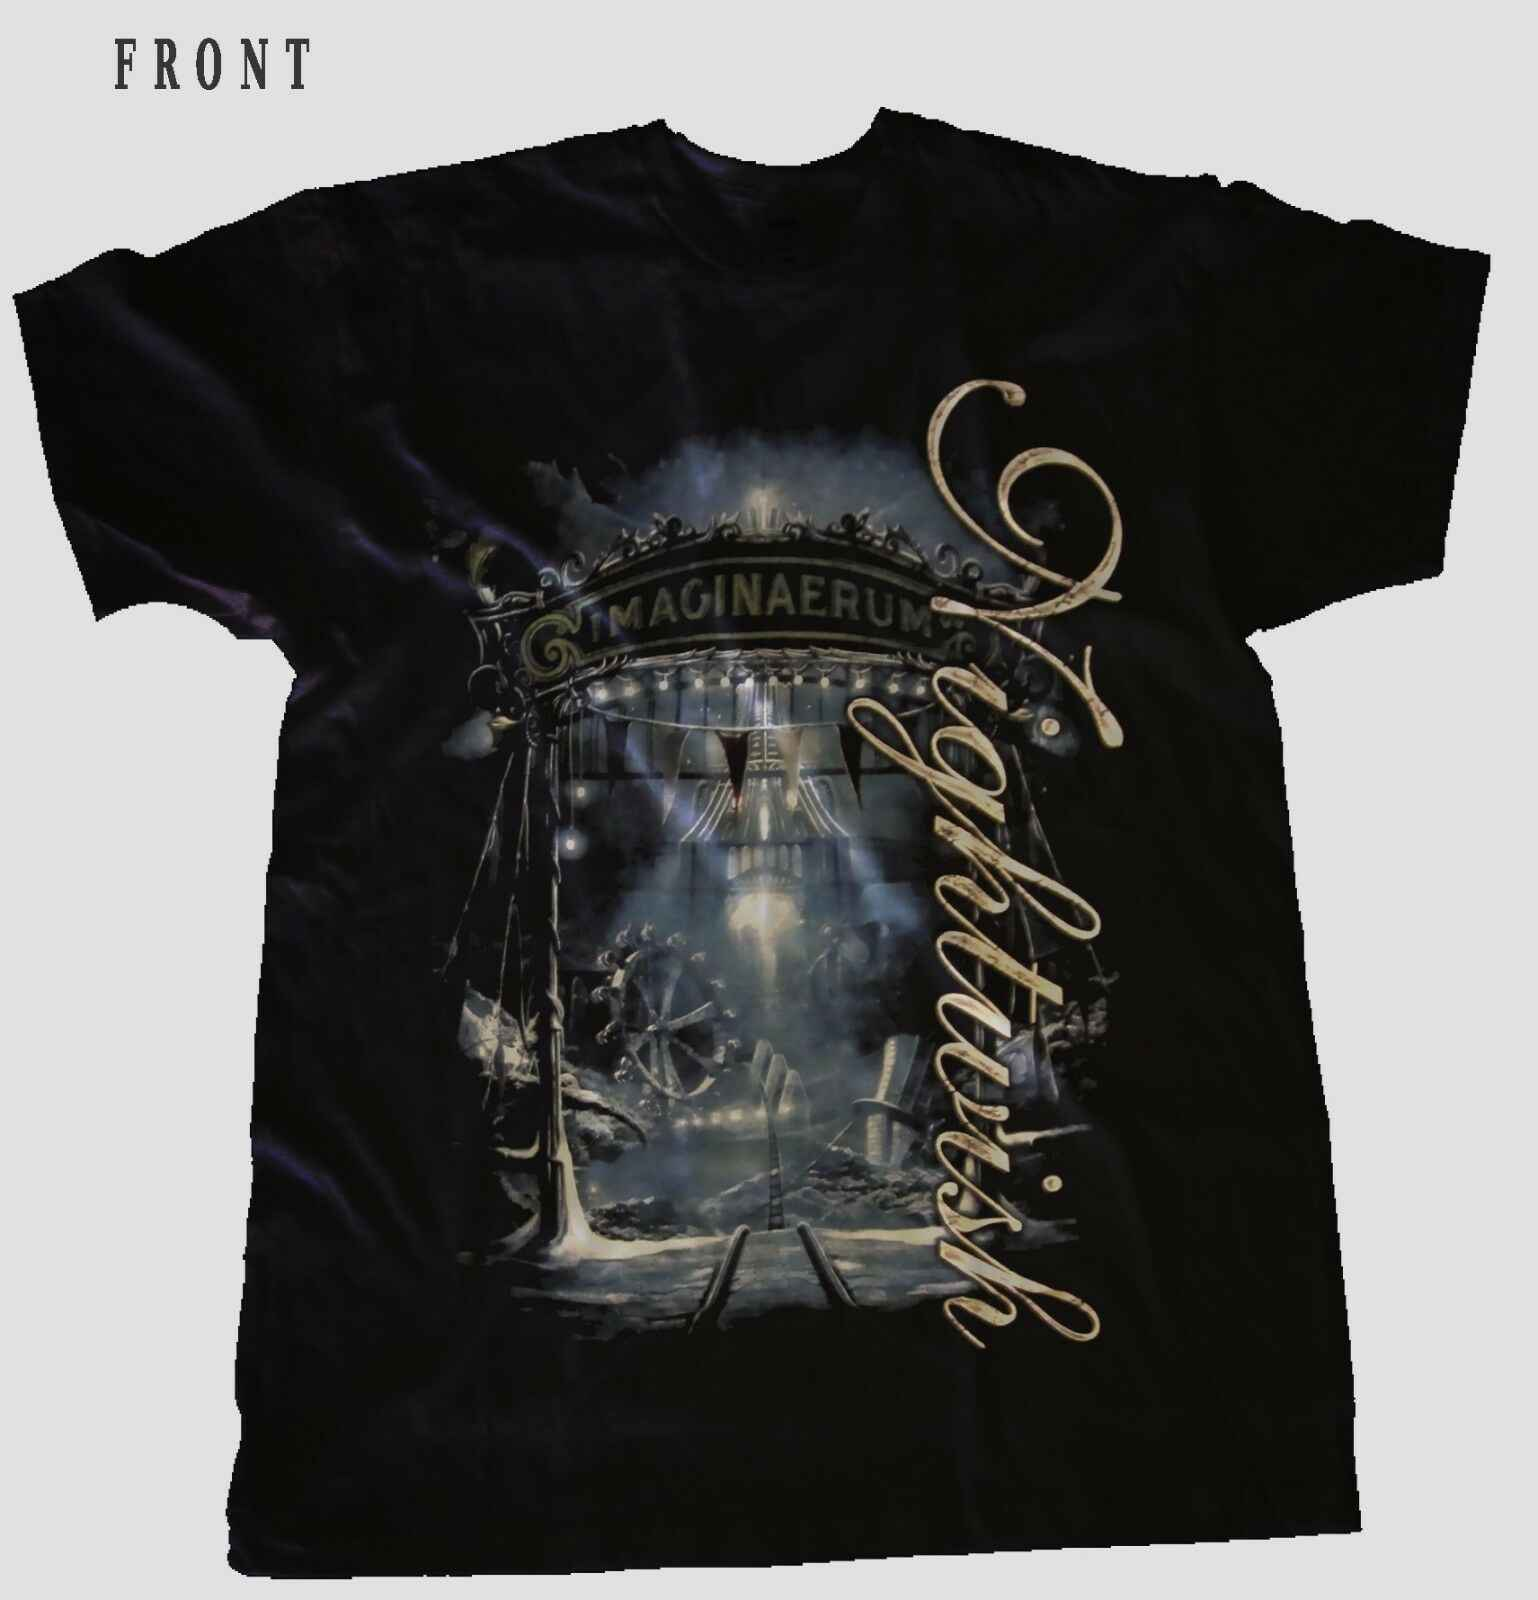 Nightwish-Imaginaerum-Symphonic Metal-Epica-Evanescence,T-เสื้อ-ขนาด: S ถึง 5XL แฟชั่นเสื้อยืด SLIM FIT O-Neck TOP TEE